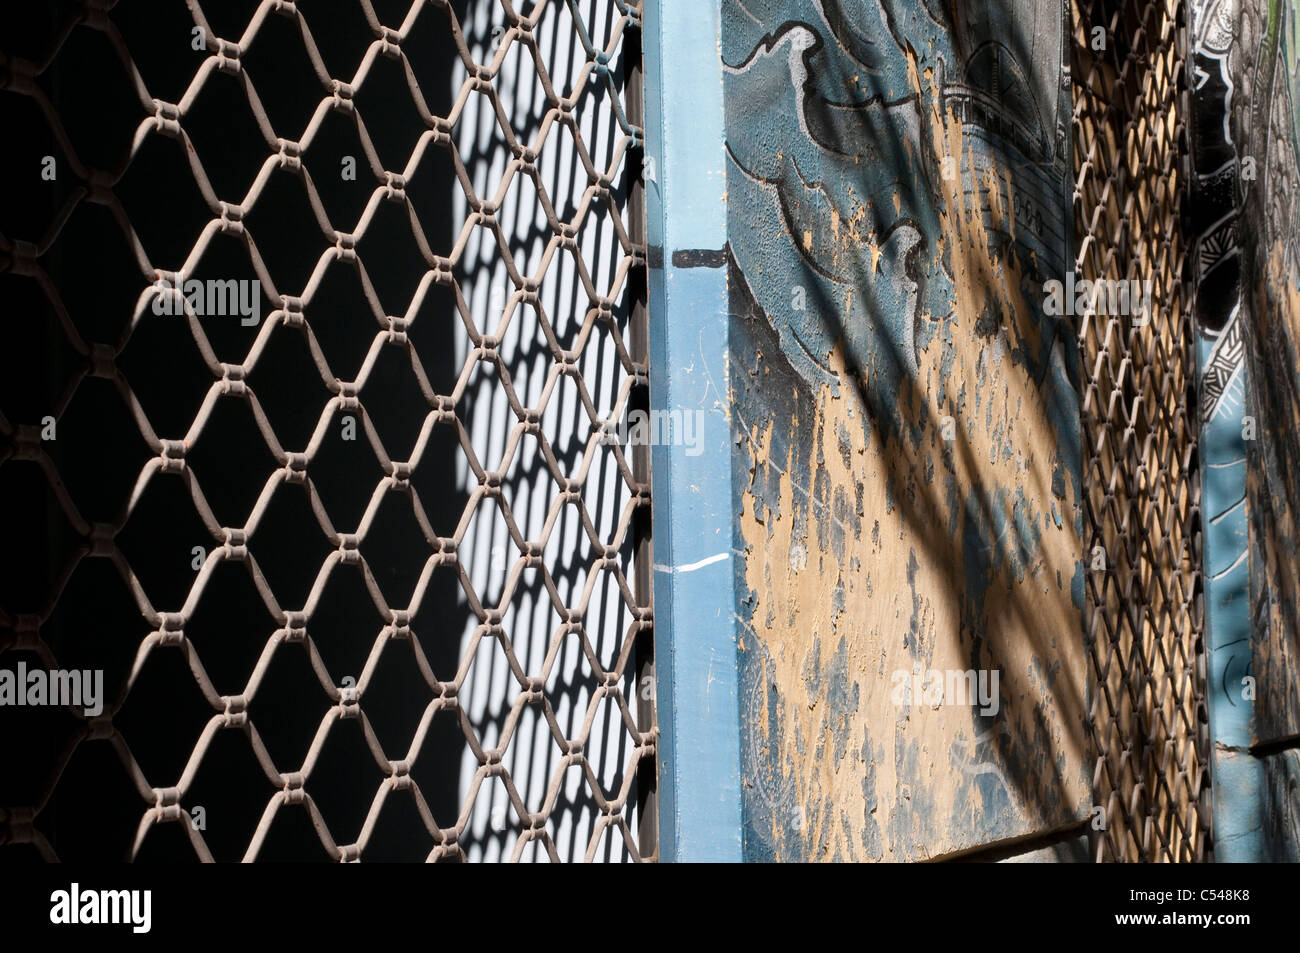 Chicken wire fence, peeling paint and shadows - Stock Image